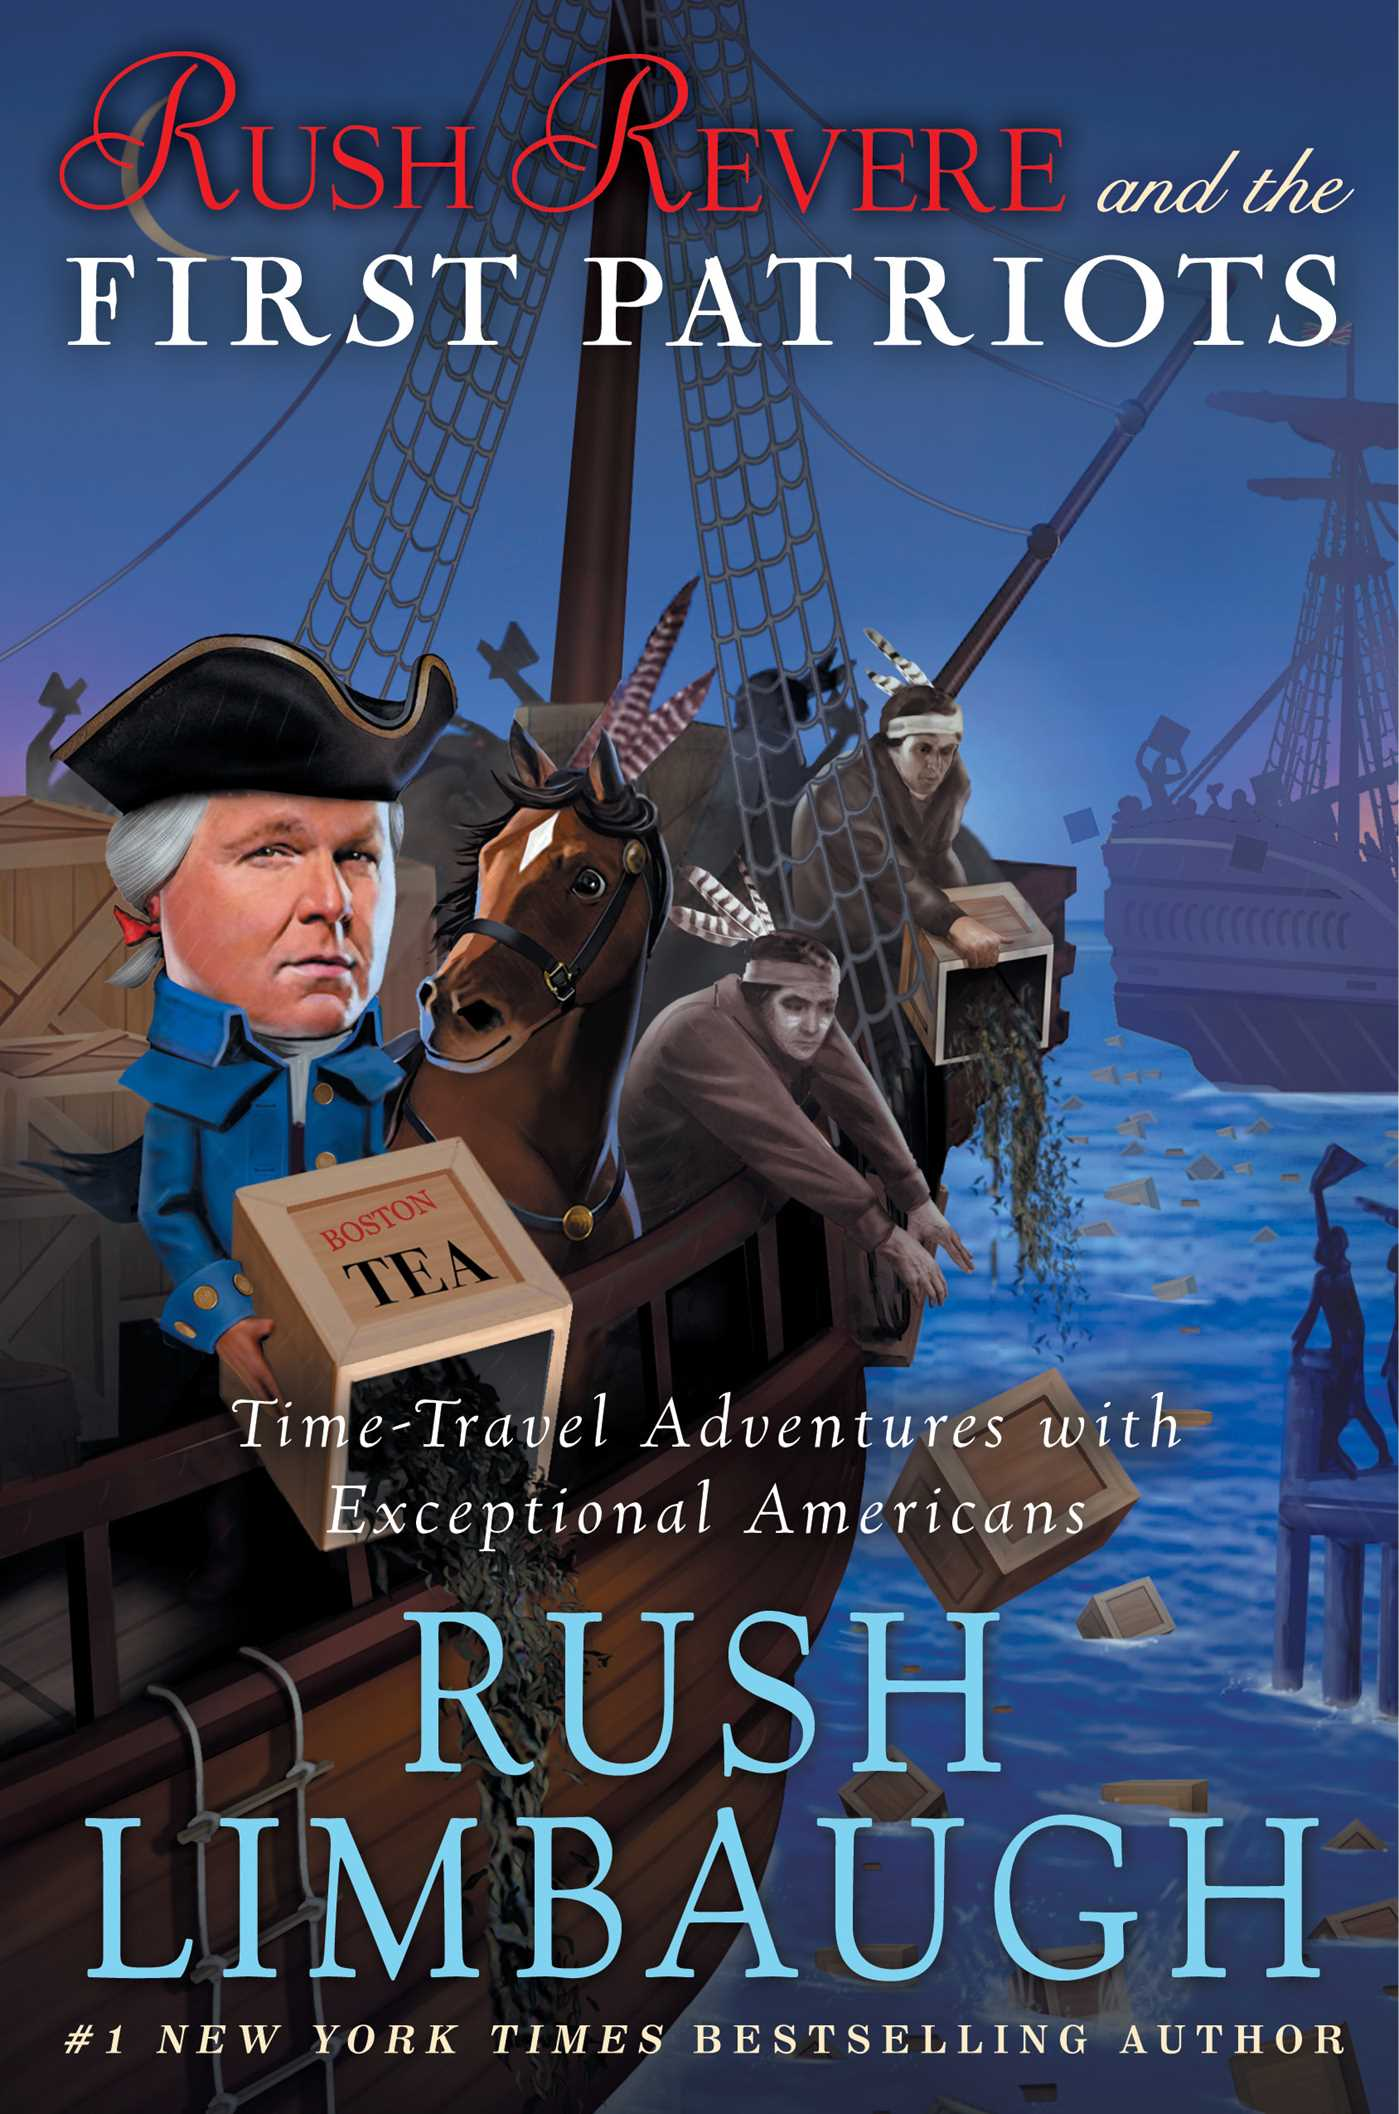 Rush revere and the first patriots 9781476755922 hr